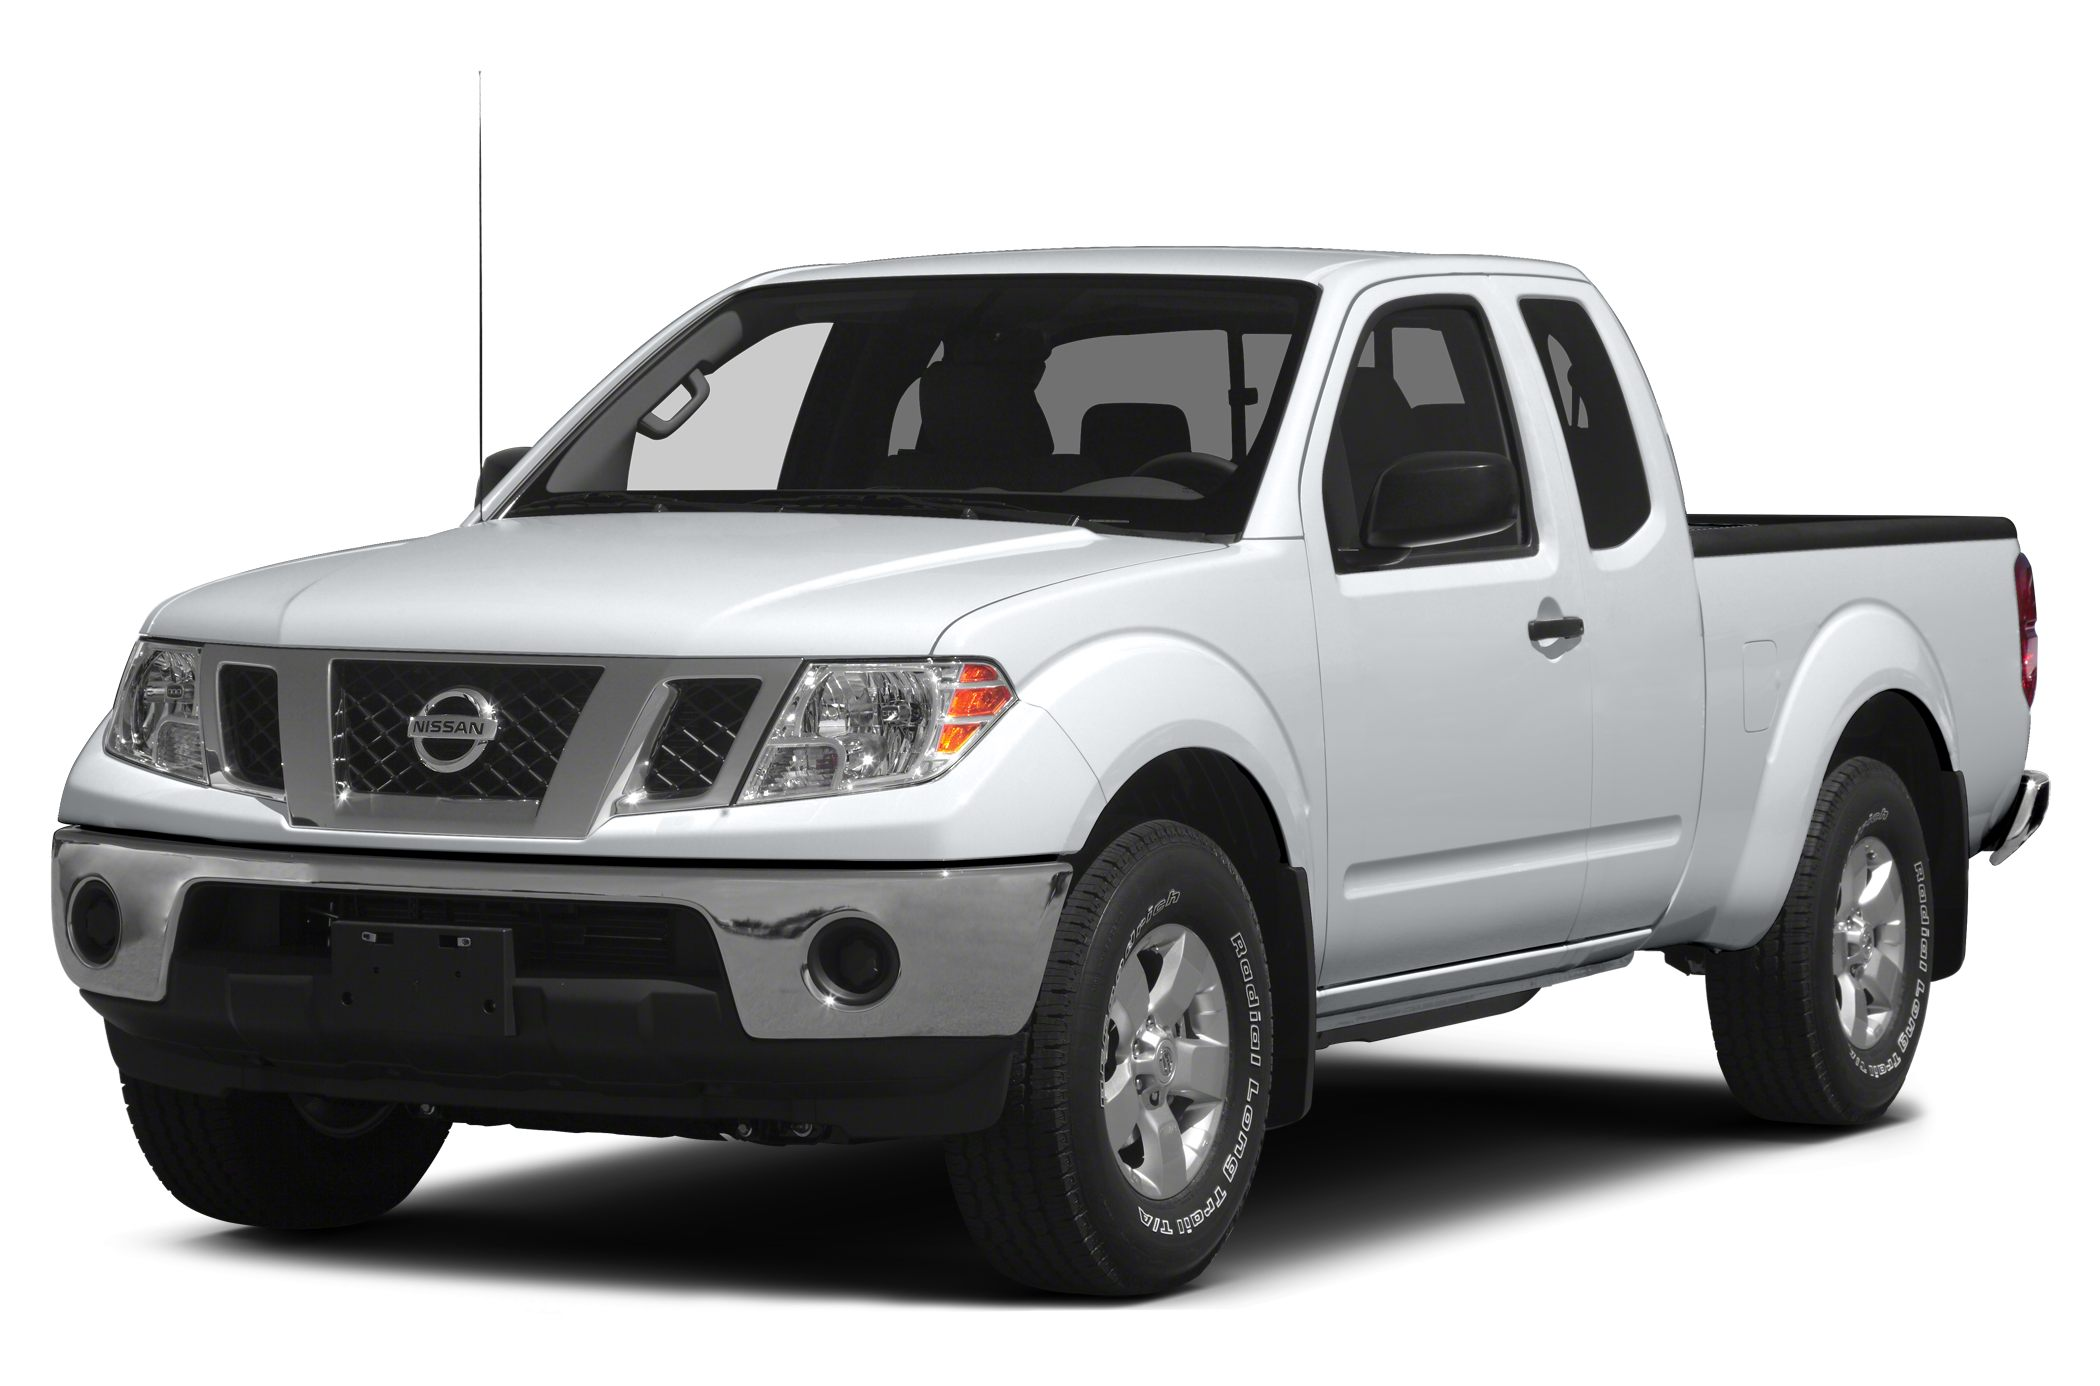 2013 Nissan Frontier S Proudly serving manatee county for over 60 years offering Cars Trucks SUV